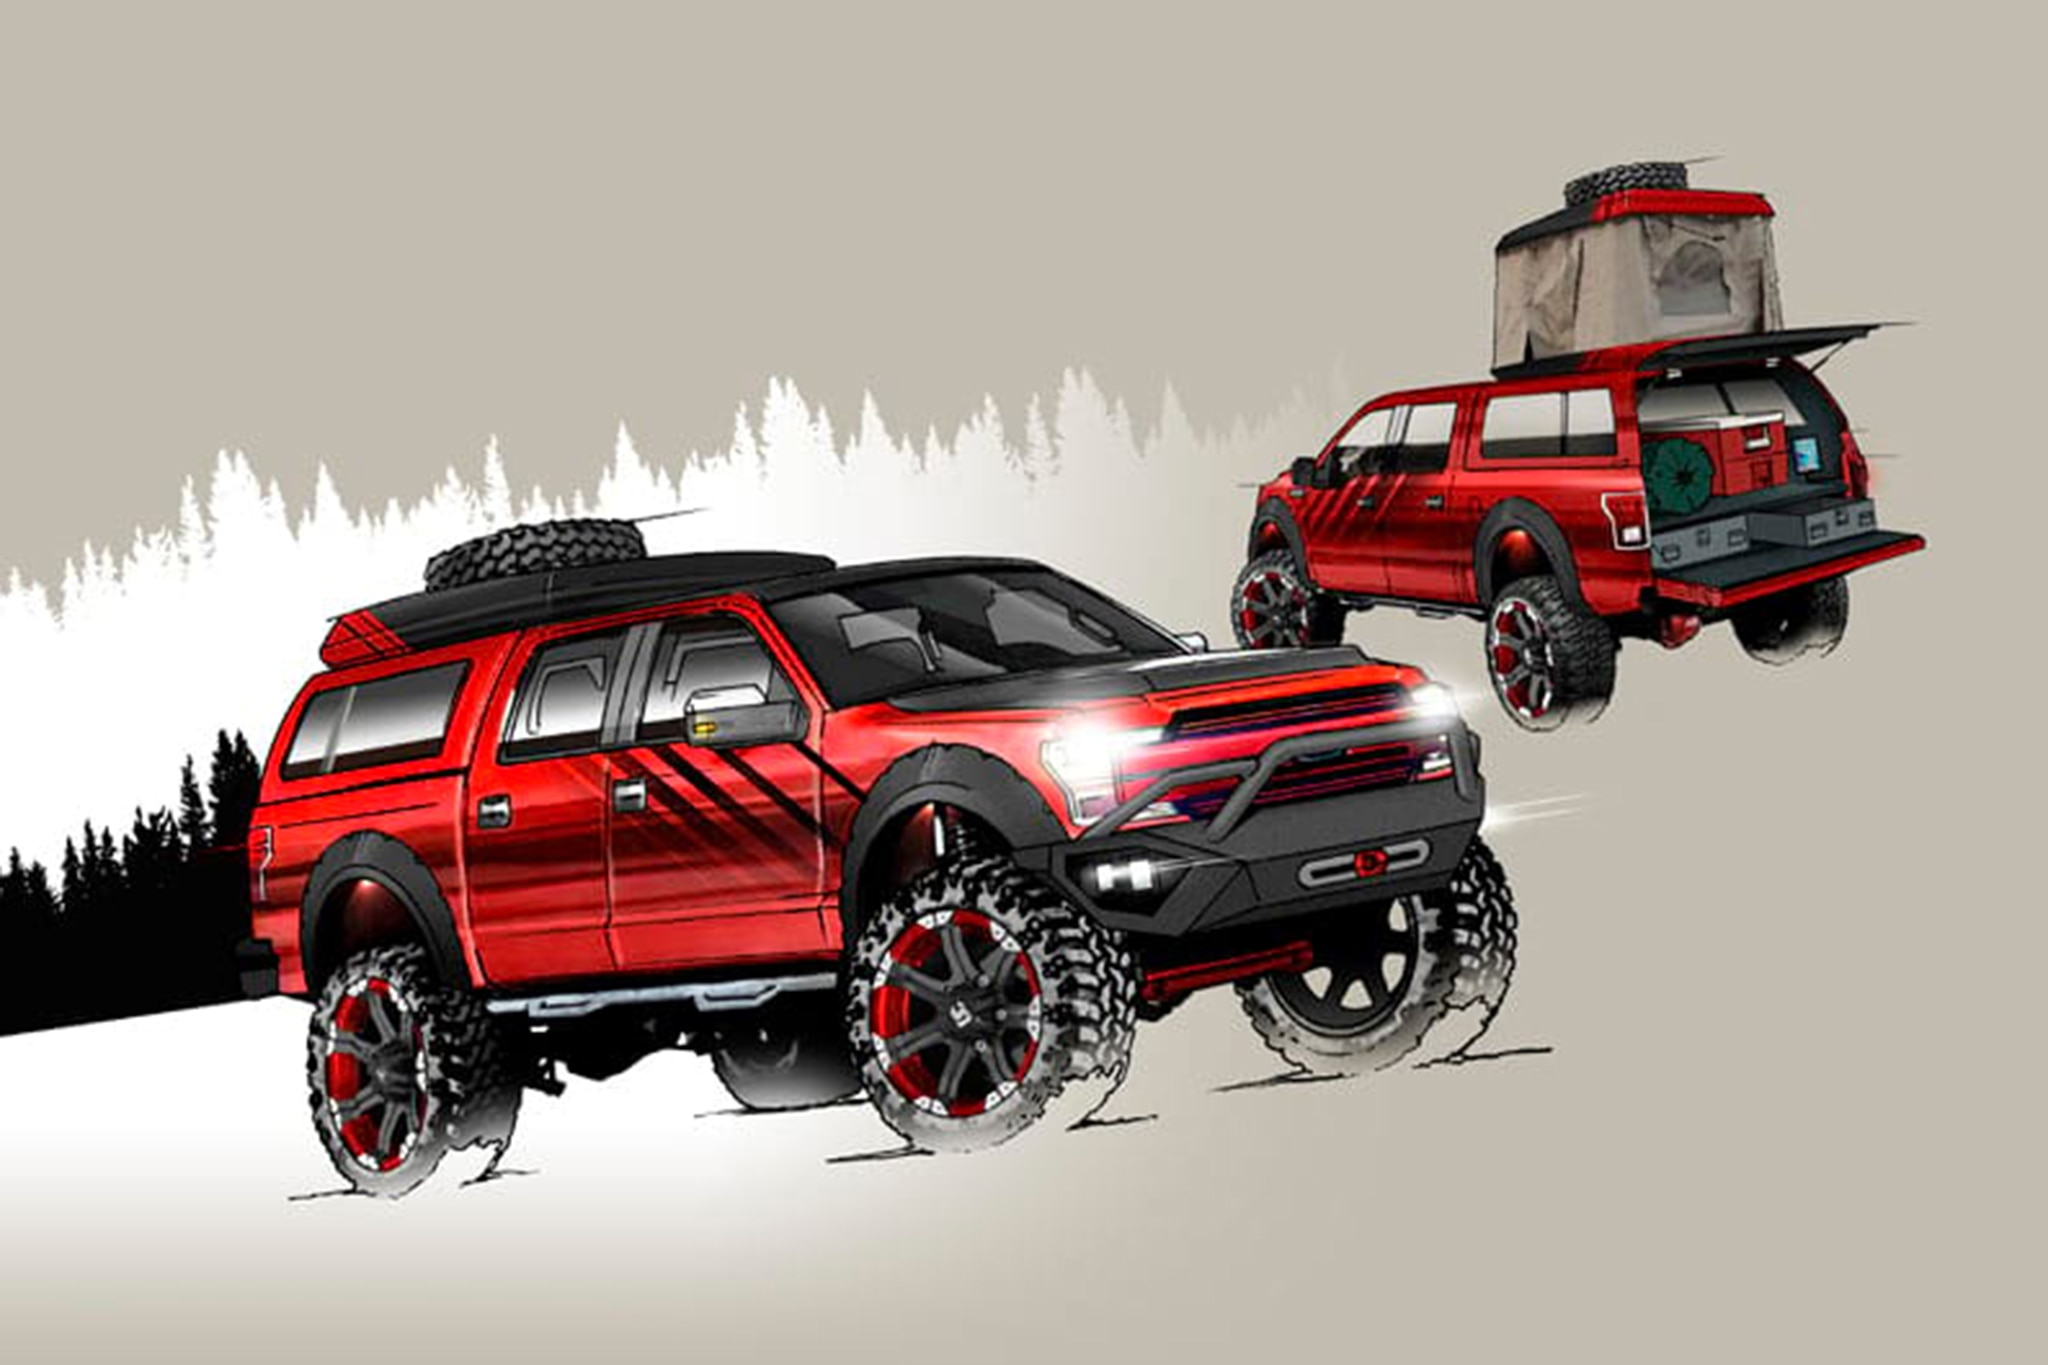 Ford F 150 Lifted >> Eight Wild and Crazy Ford F-Series Trucks at SEMA | Automobile Magazine